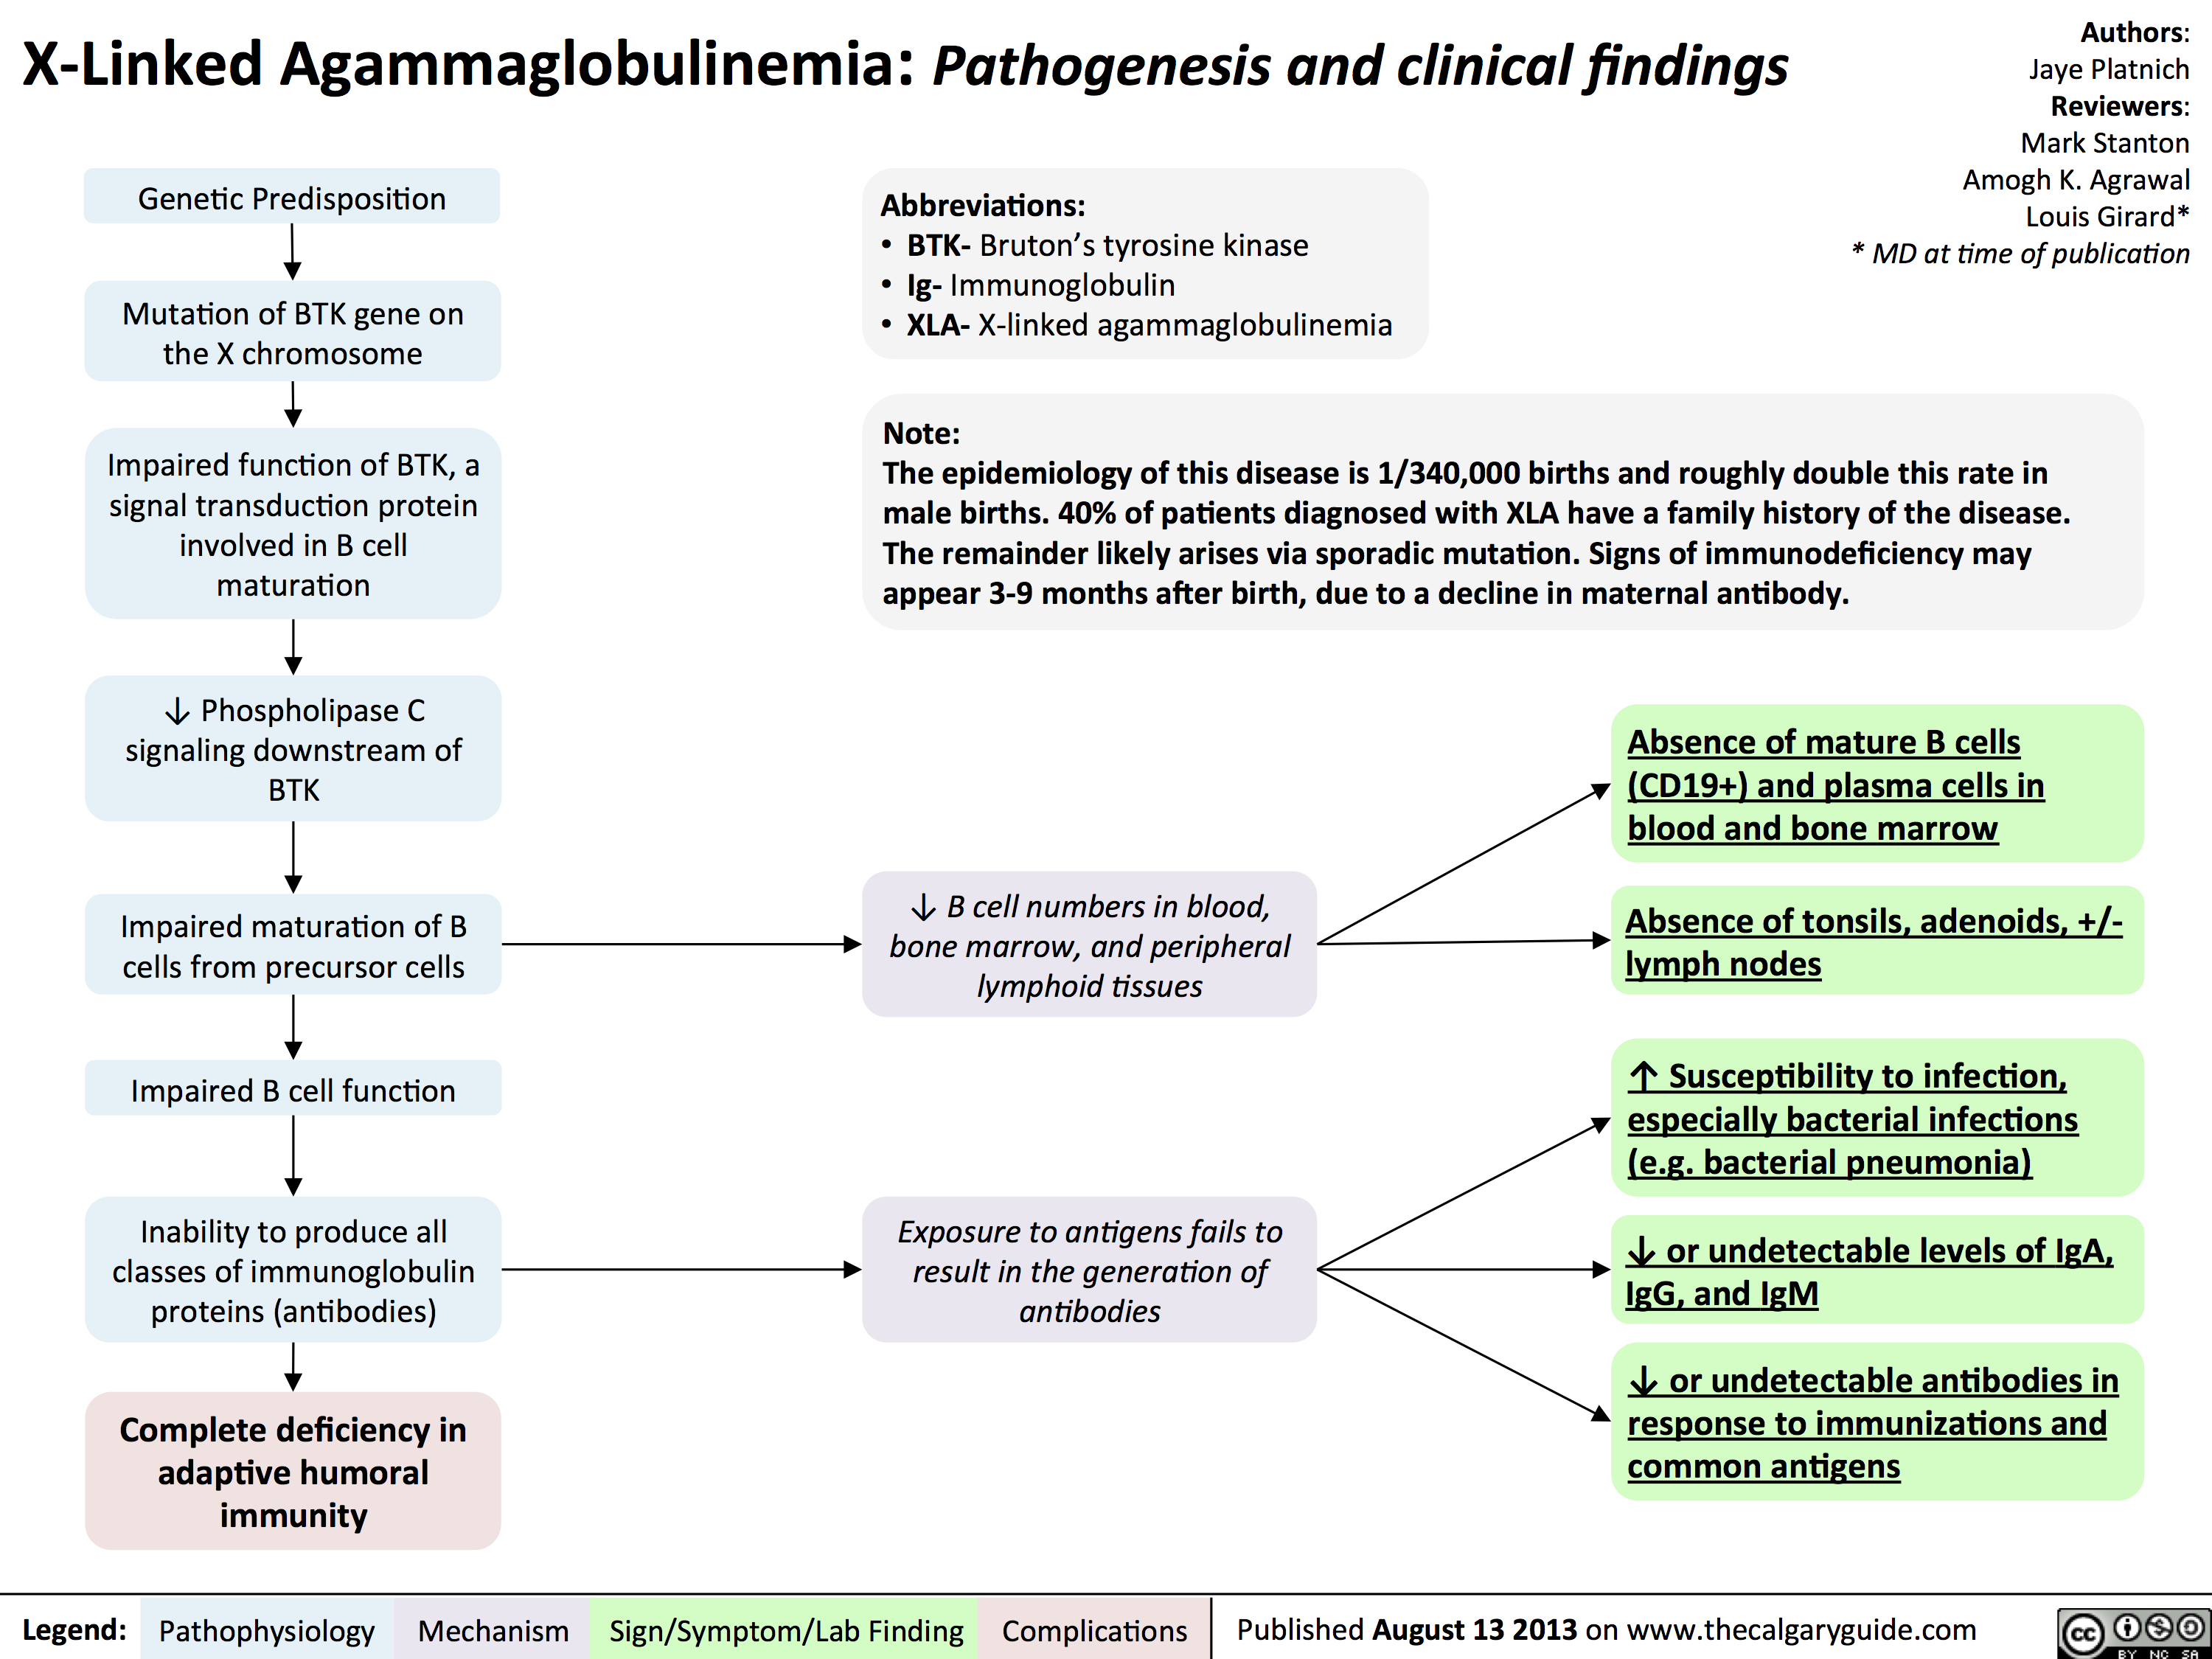 Agammaglobulinemia: Pathogenesis and clinical findings